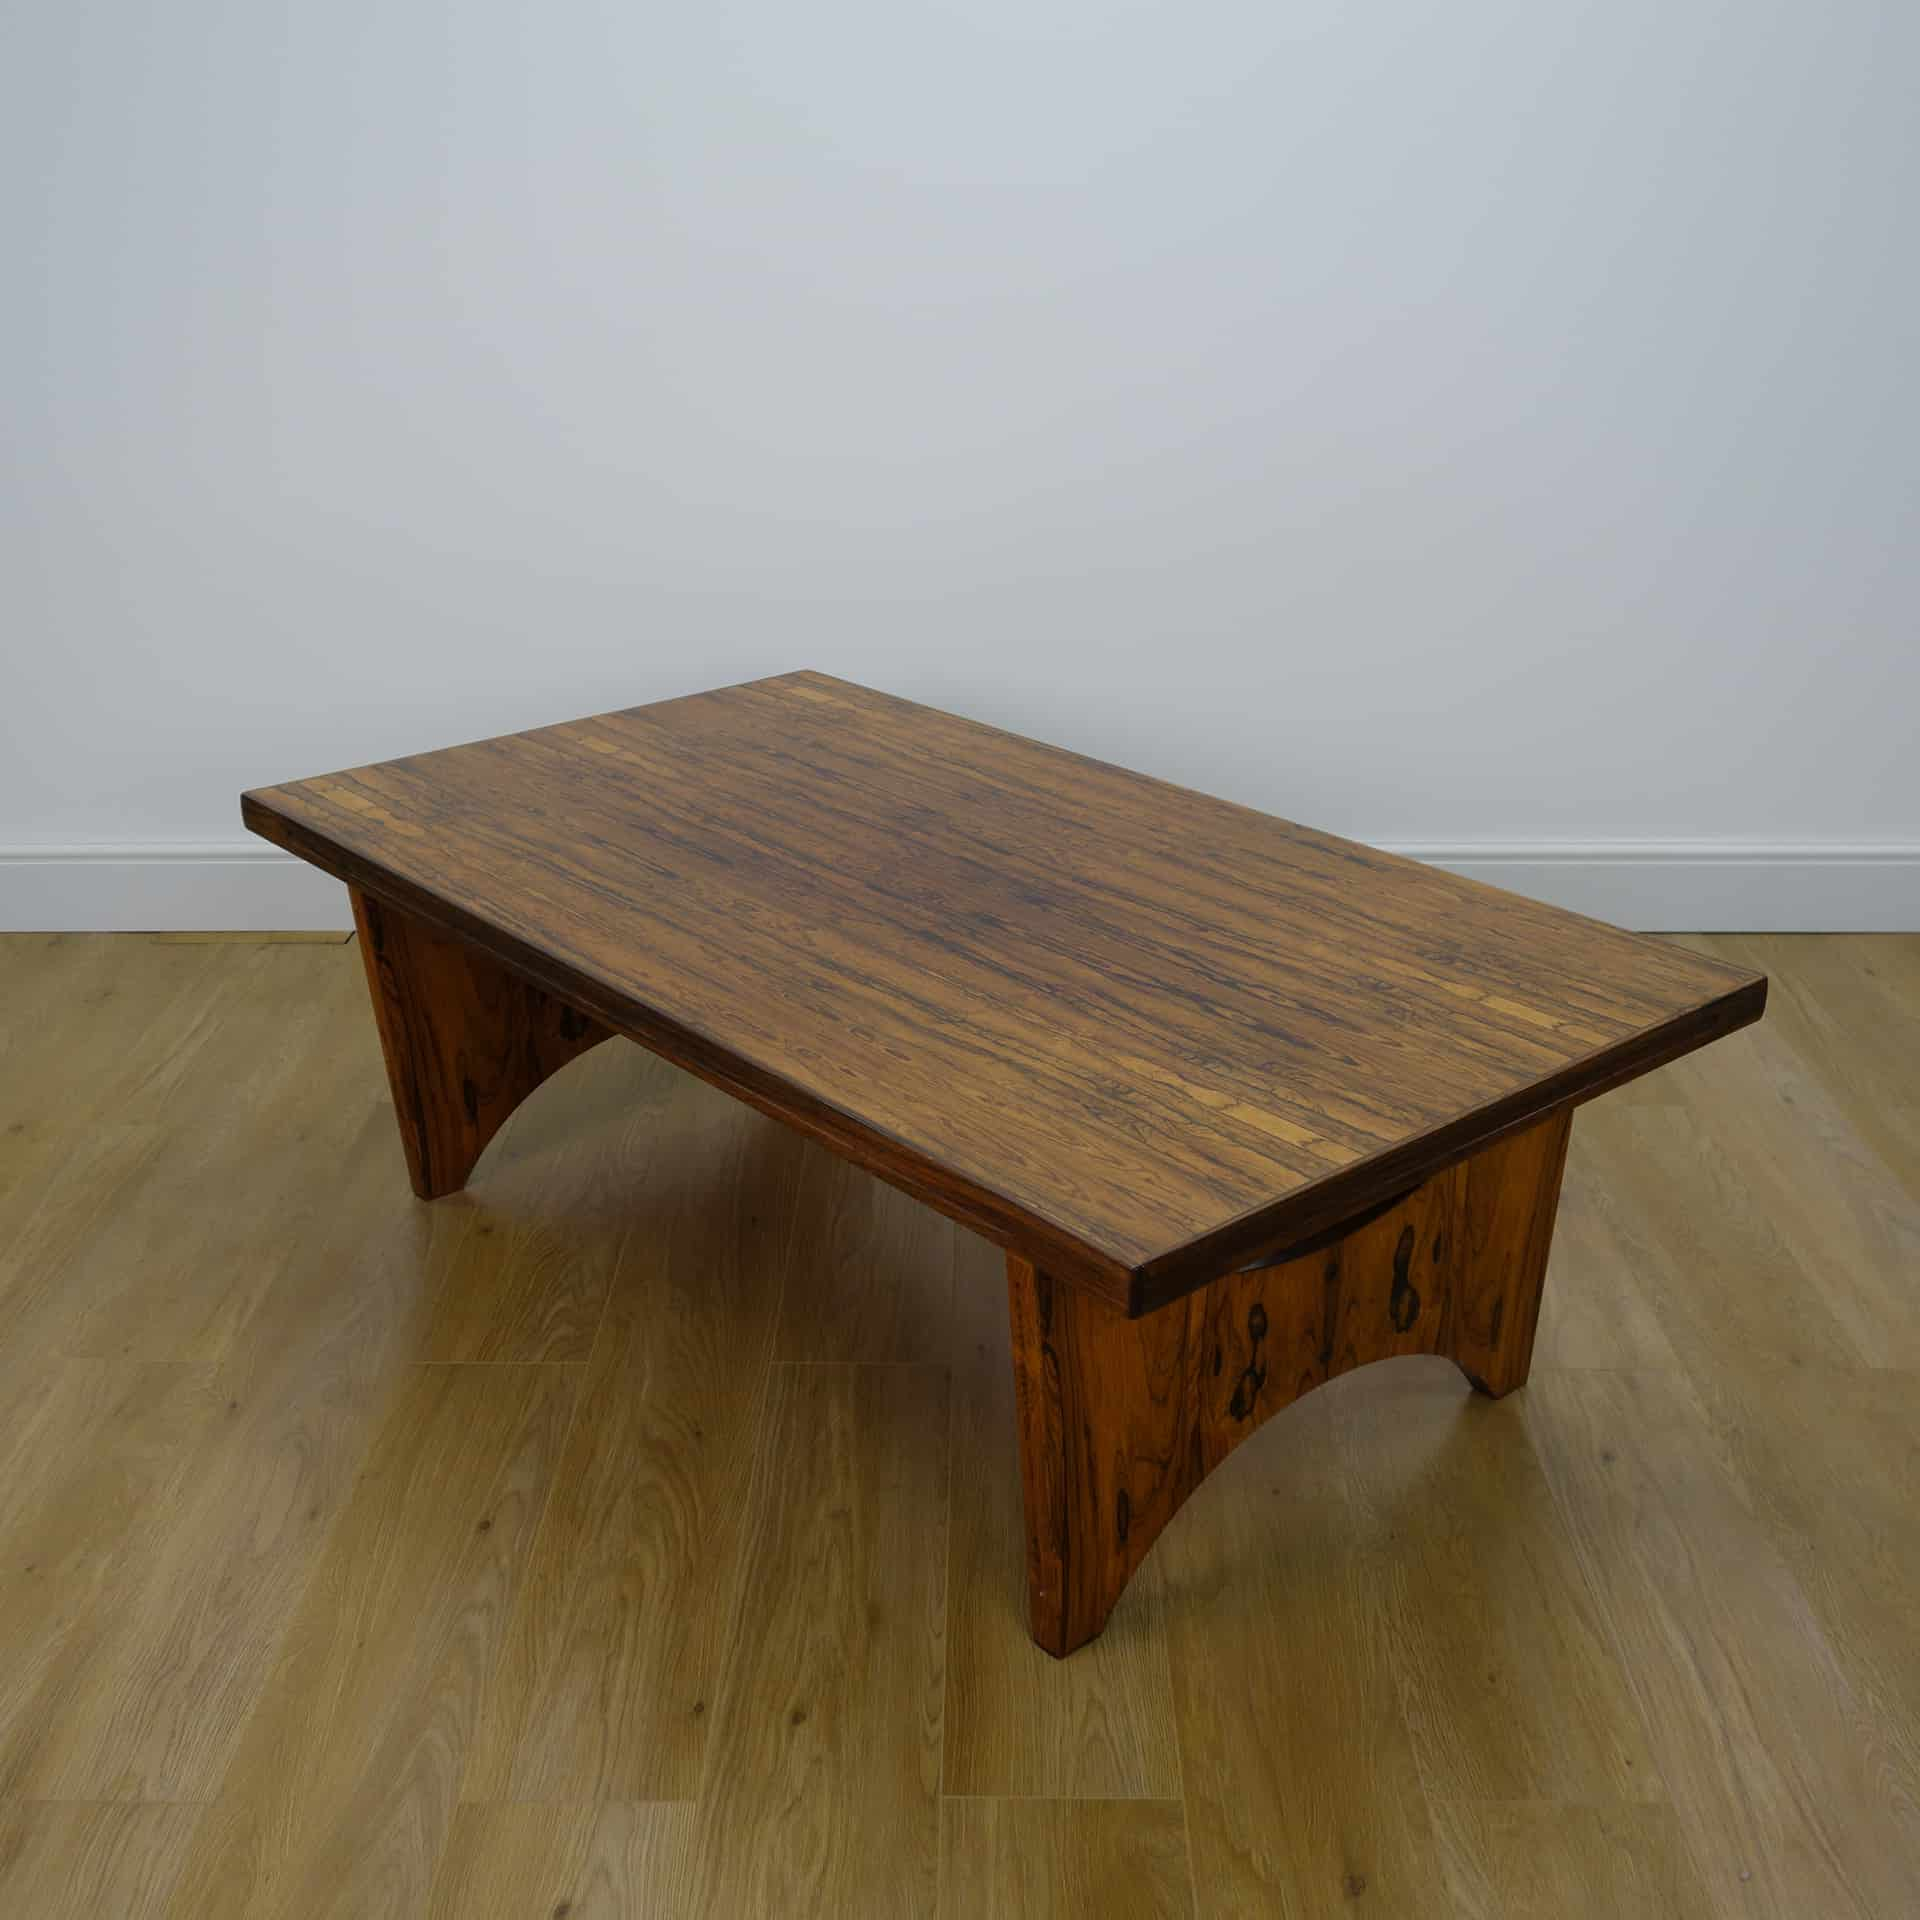 Large 1970s rio rosewood coffee table by Torpe Norway